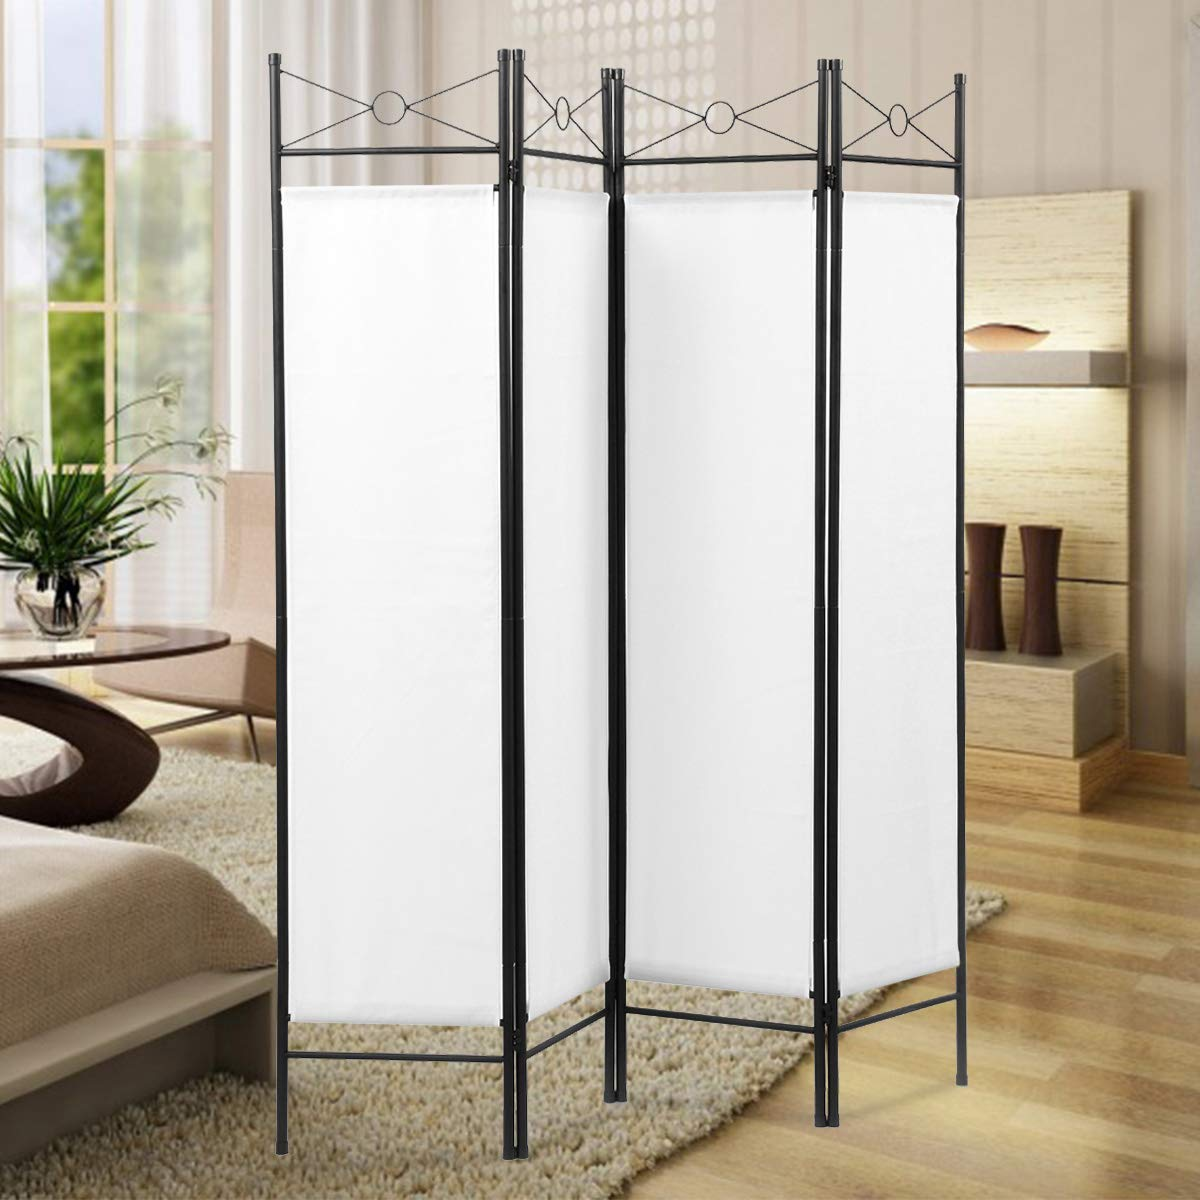 Sandinrayli 4-Panel Steel Room Divider Screen Fabric Folding Partition Home Office Privacy Screen, White: Industrial & Scientific